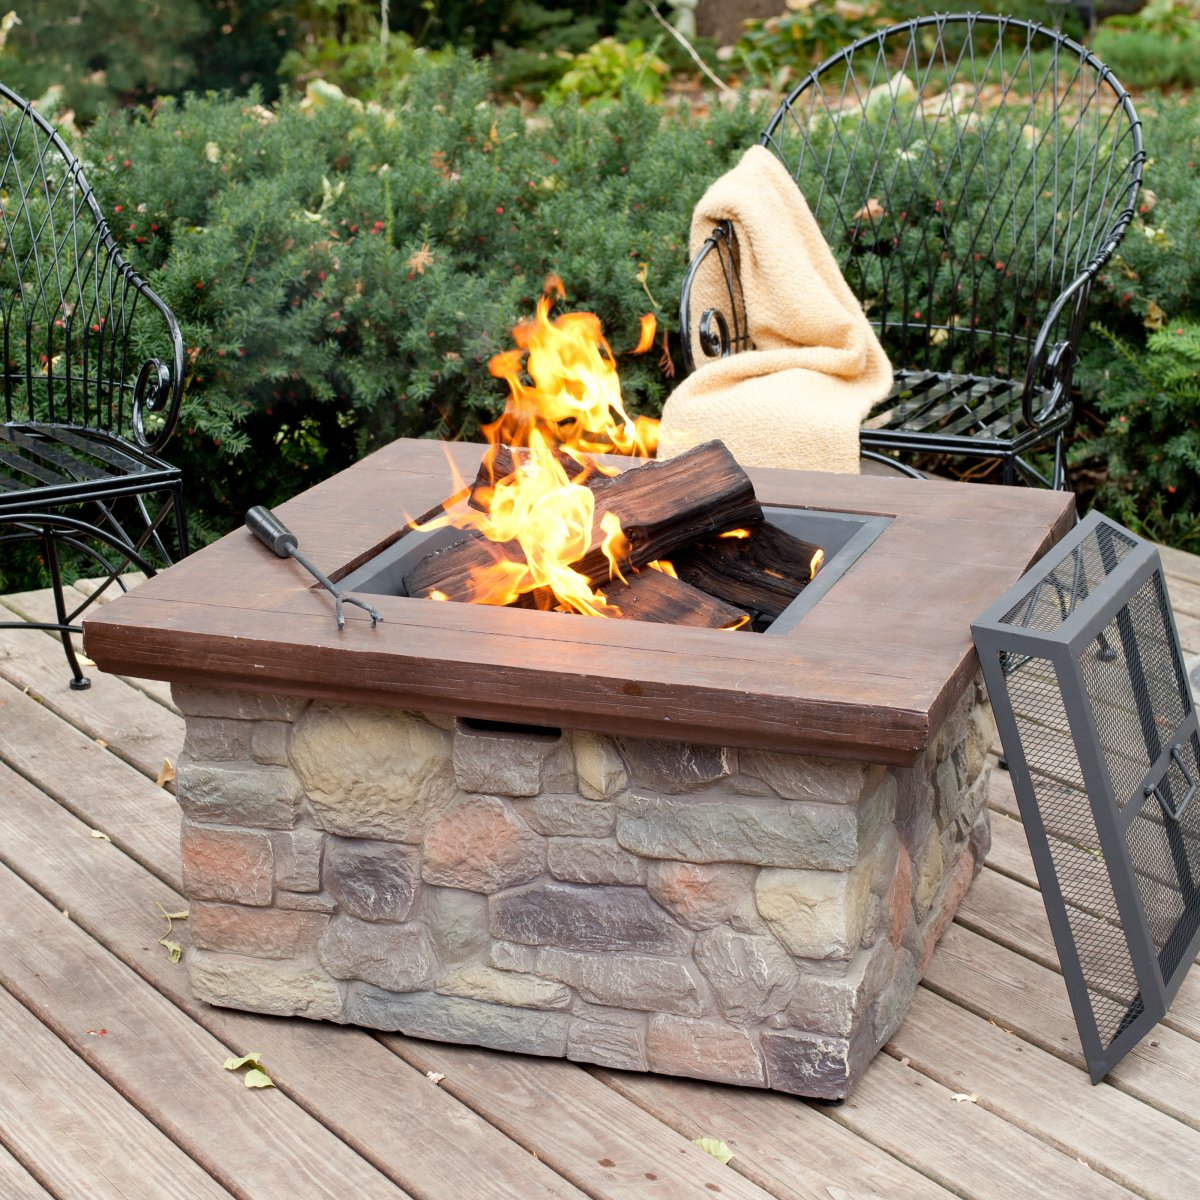 Metal fire pit on wood deck - Fire Pit Table On Wood Deck